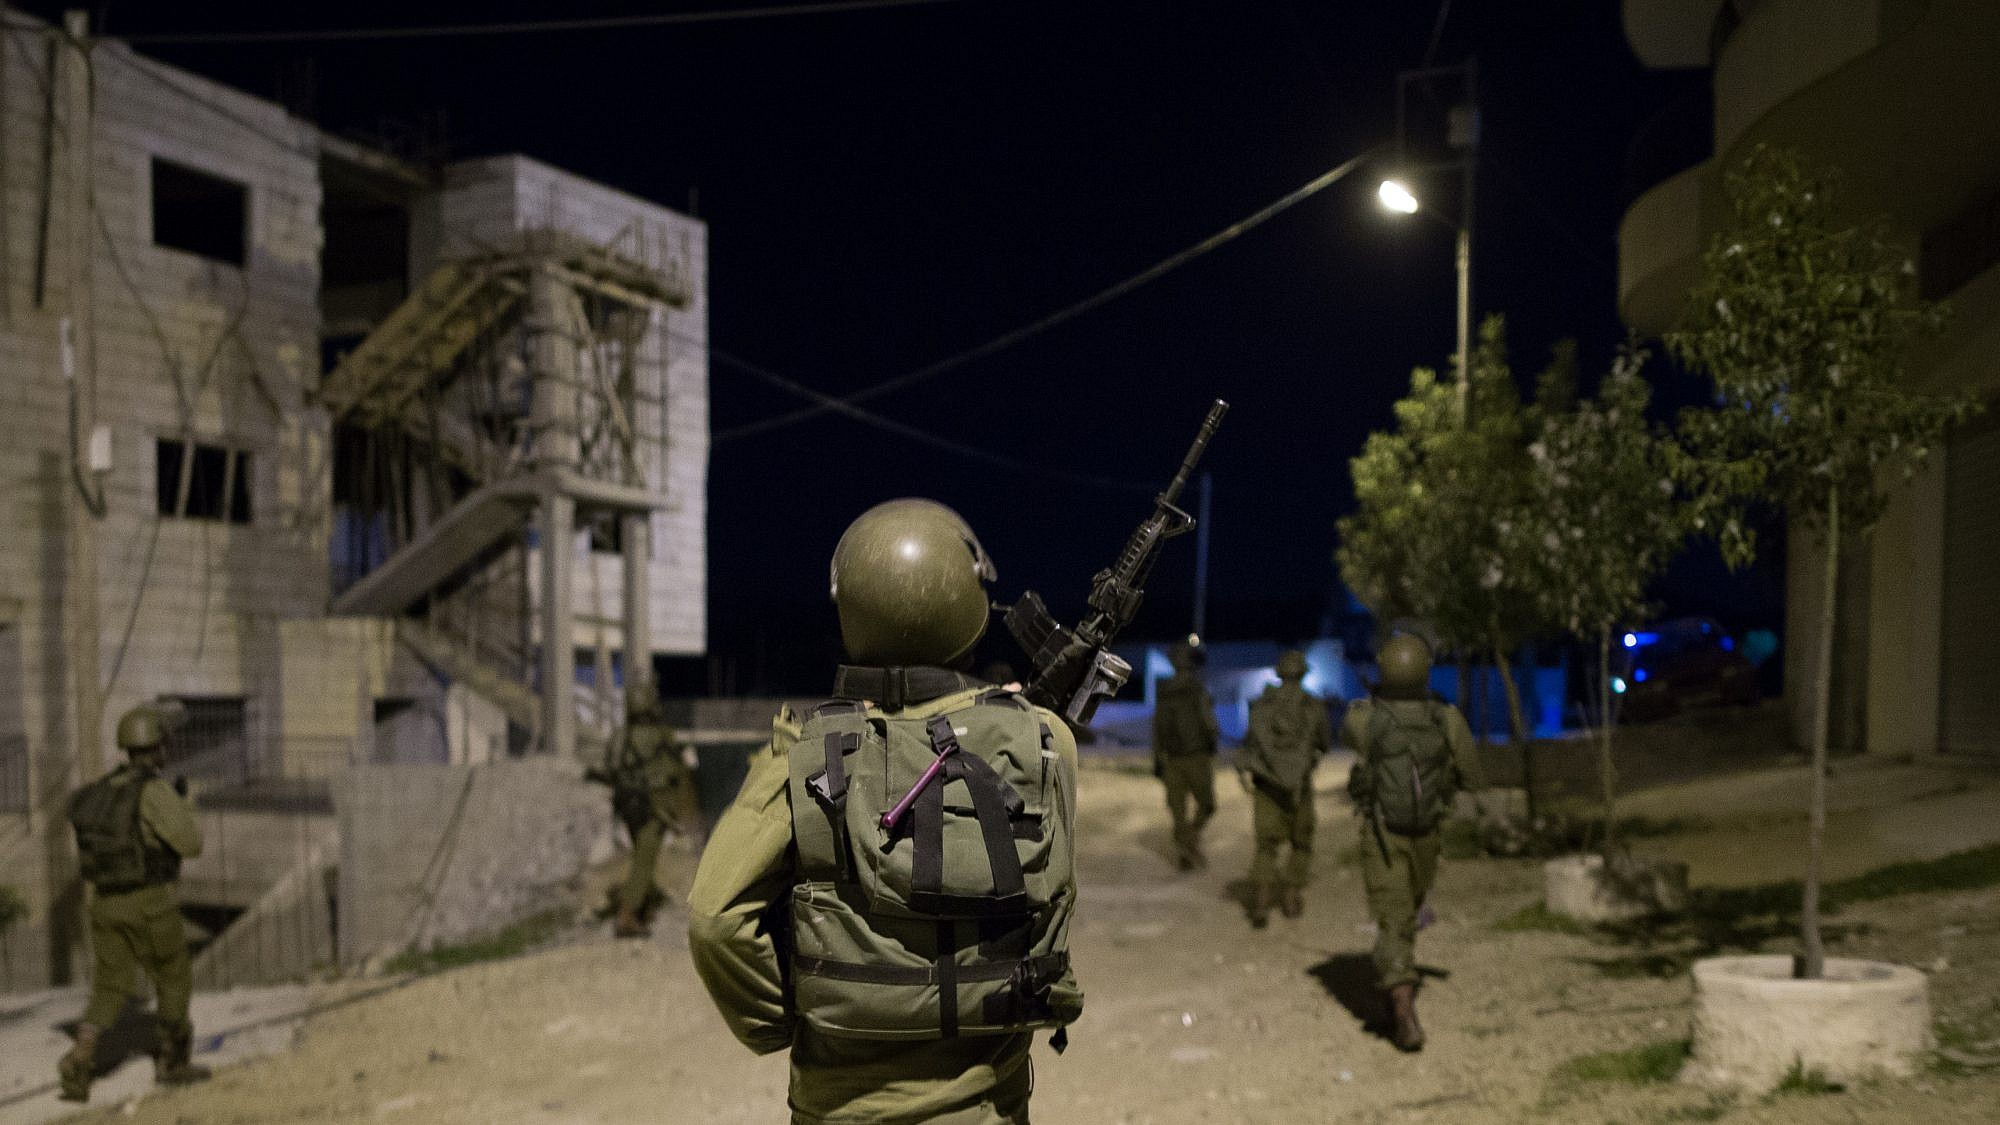 File photo: Nachshon Battalion soldiers during an operation of arresting terror suspects in the Duhaisha Refugee Camp, near the West Bank city of Bethlehem. Credit: Nati Shohat/Flash90.